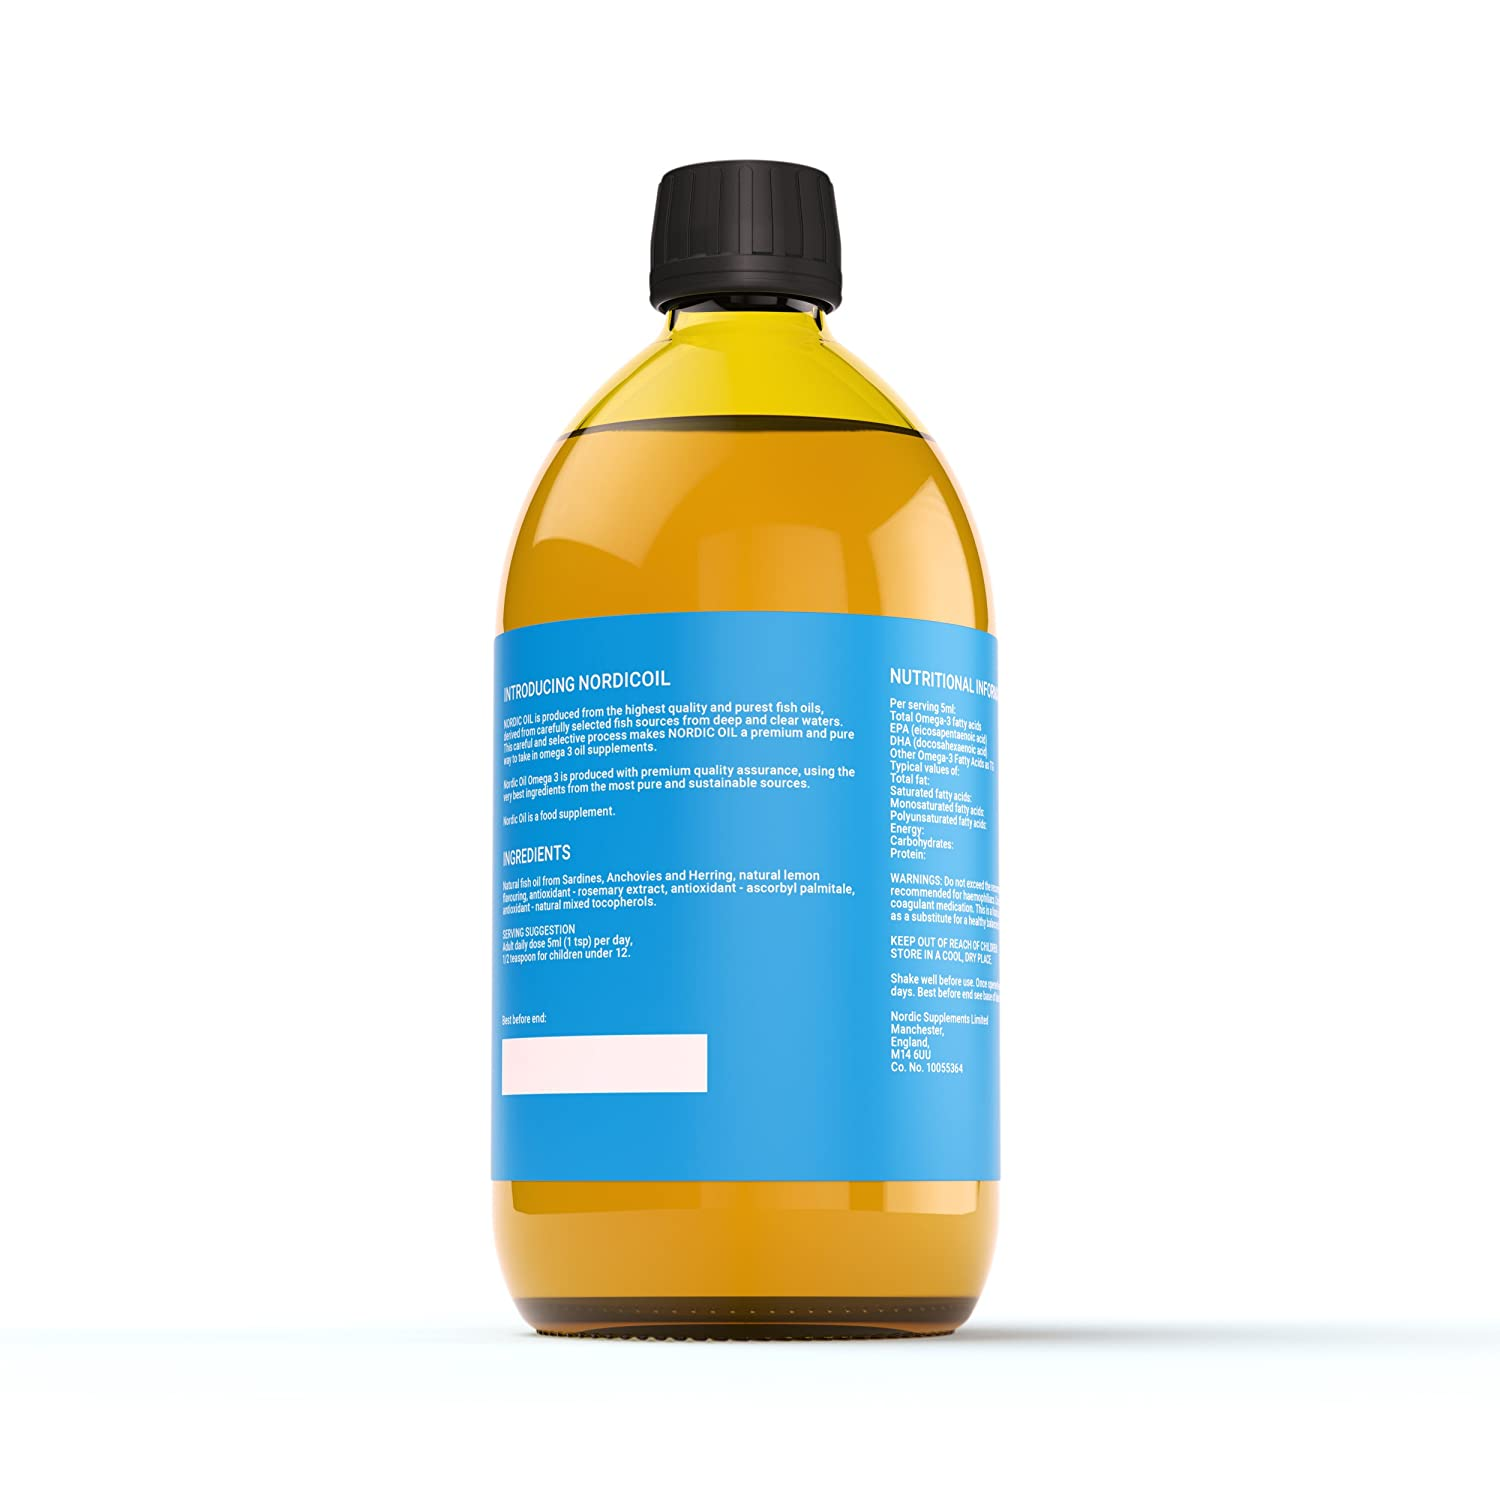 Nordic Oil High Strength 500ml Omega 3 Fish Oil  Lemon Flavoured and 3rd  Party Tested